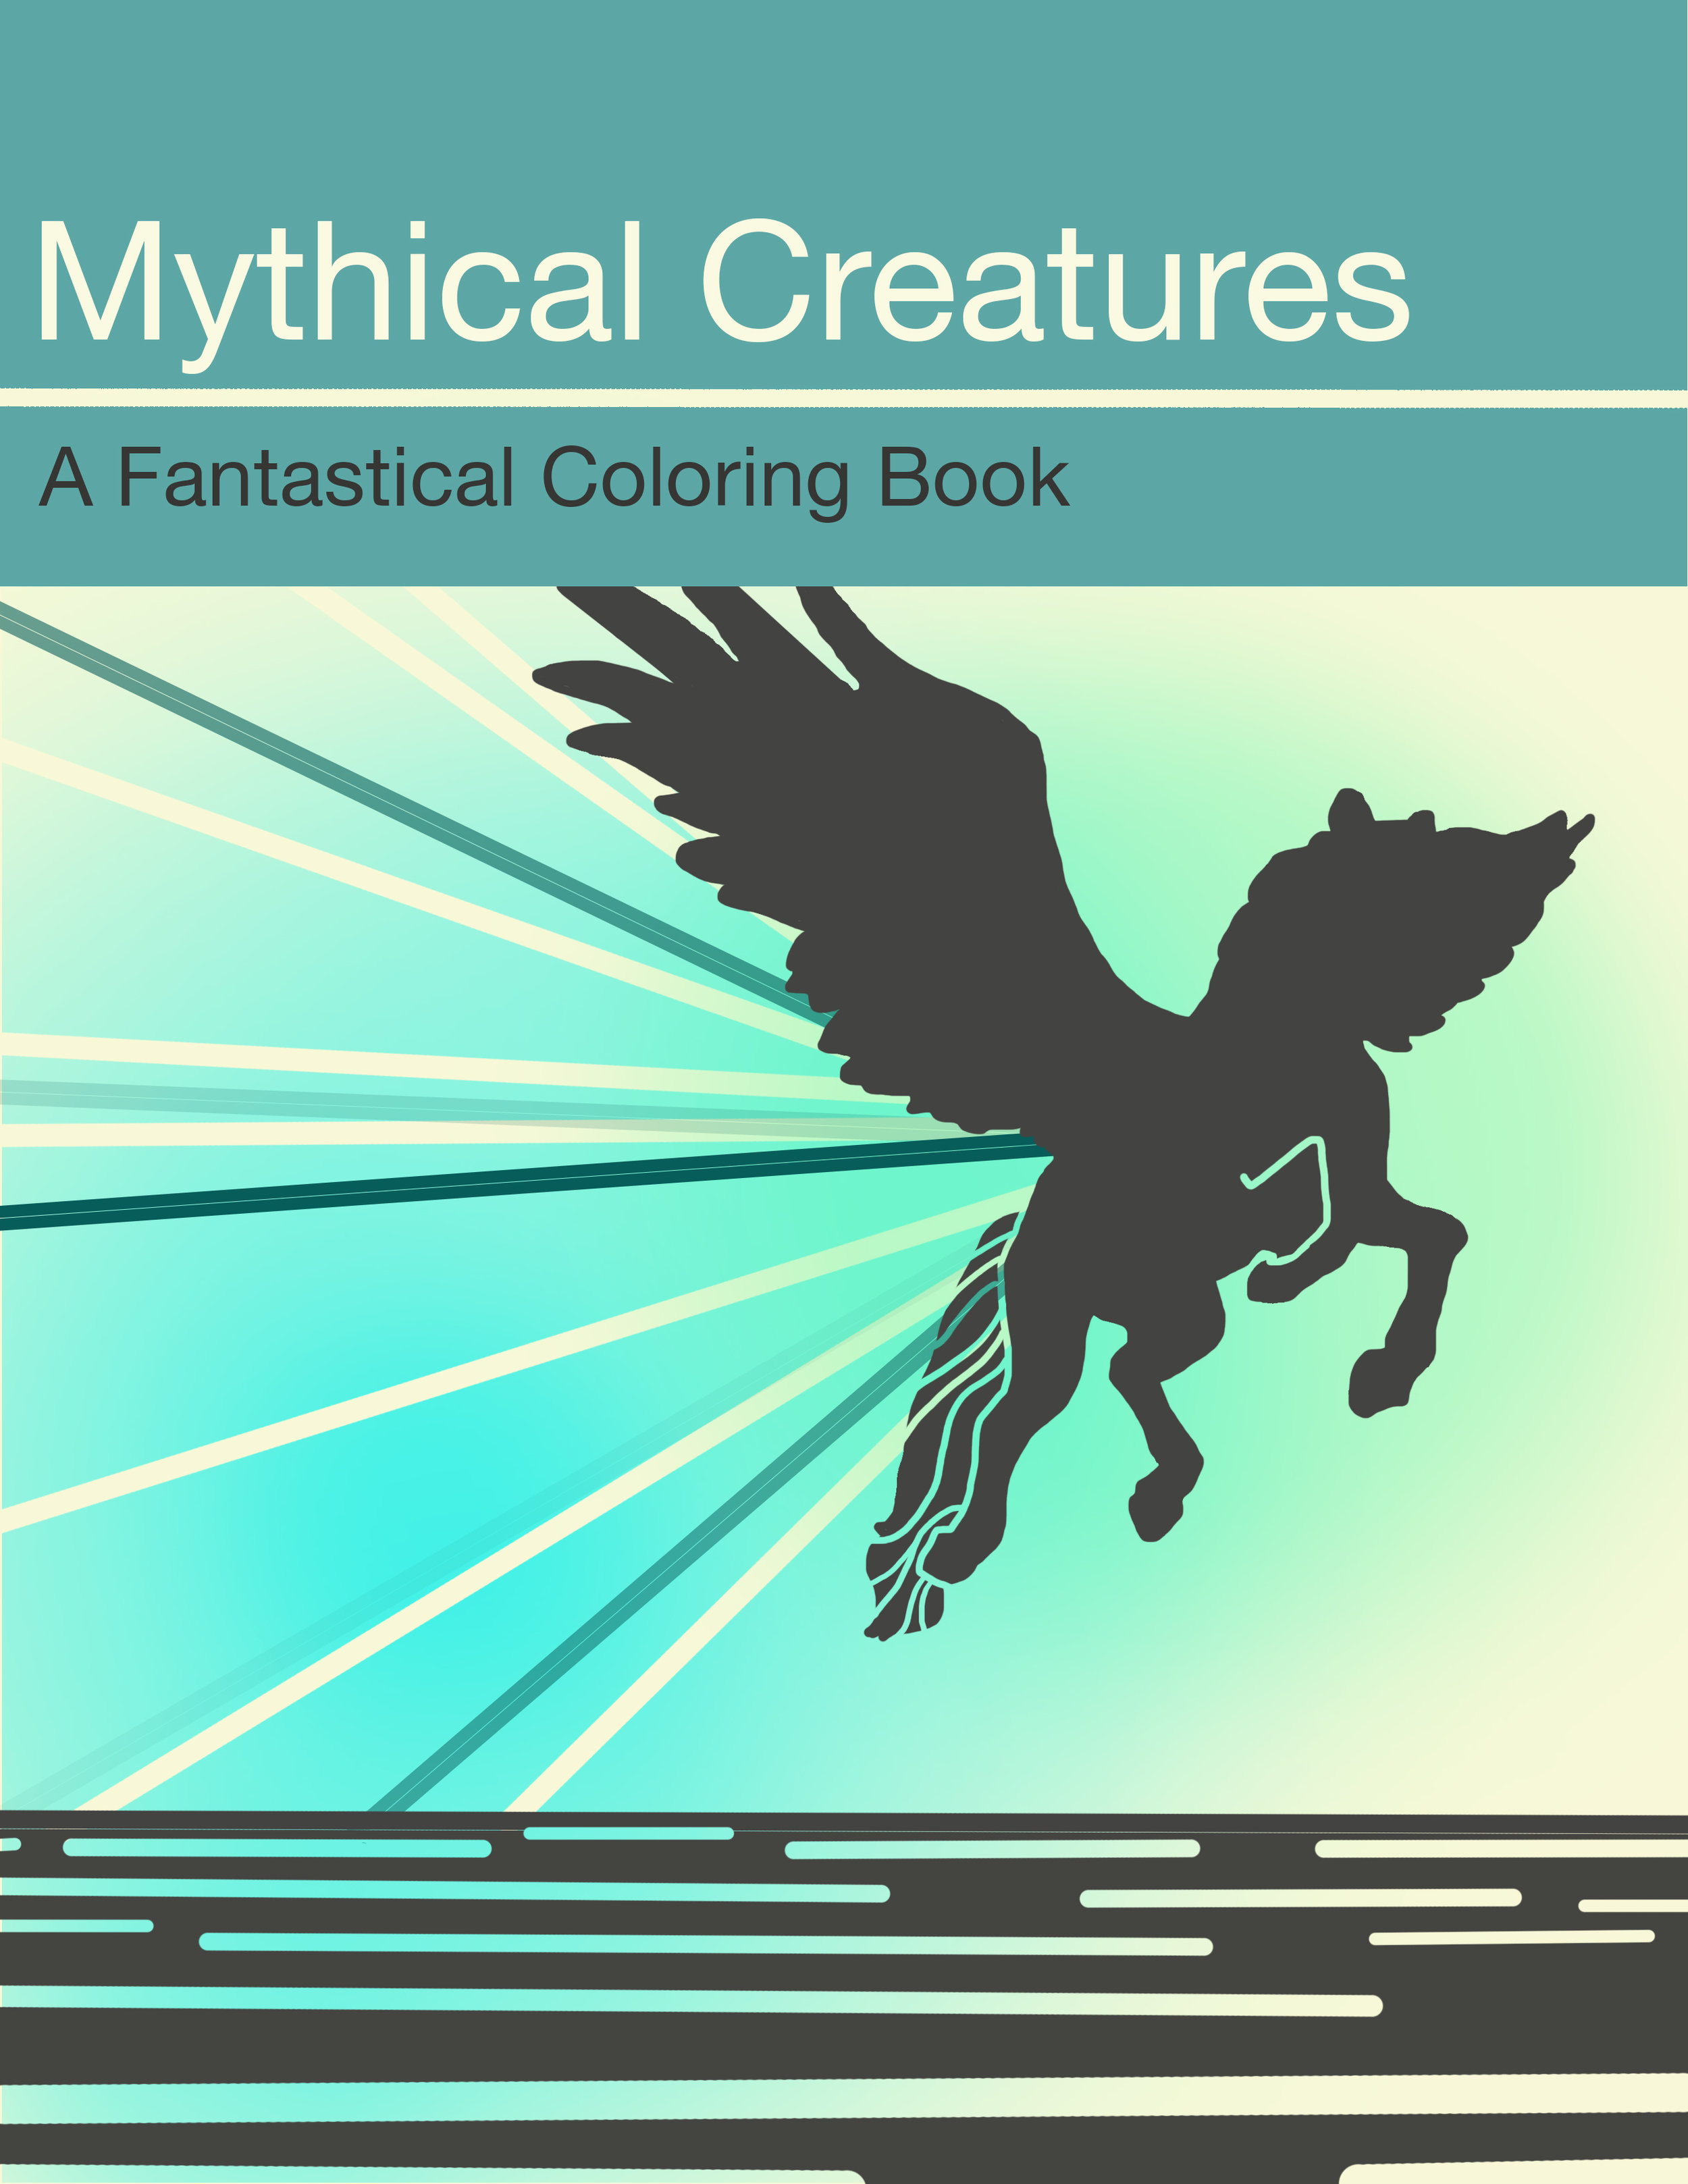 mythical creatures.jpg